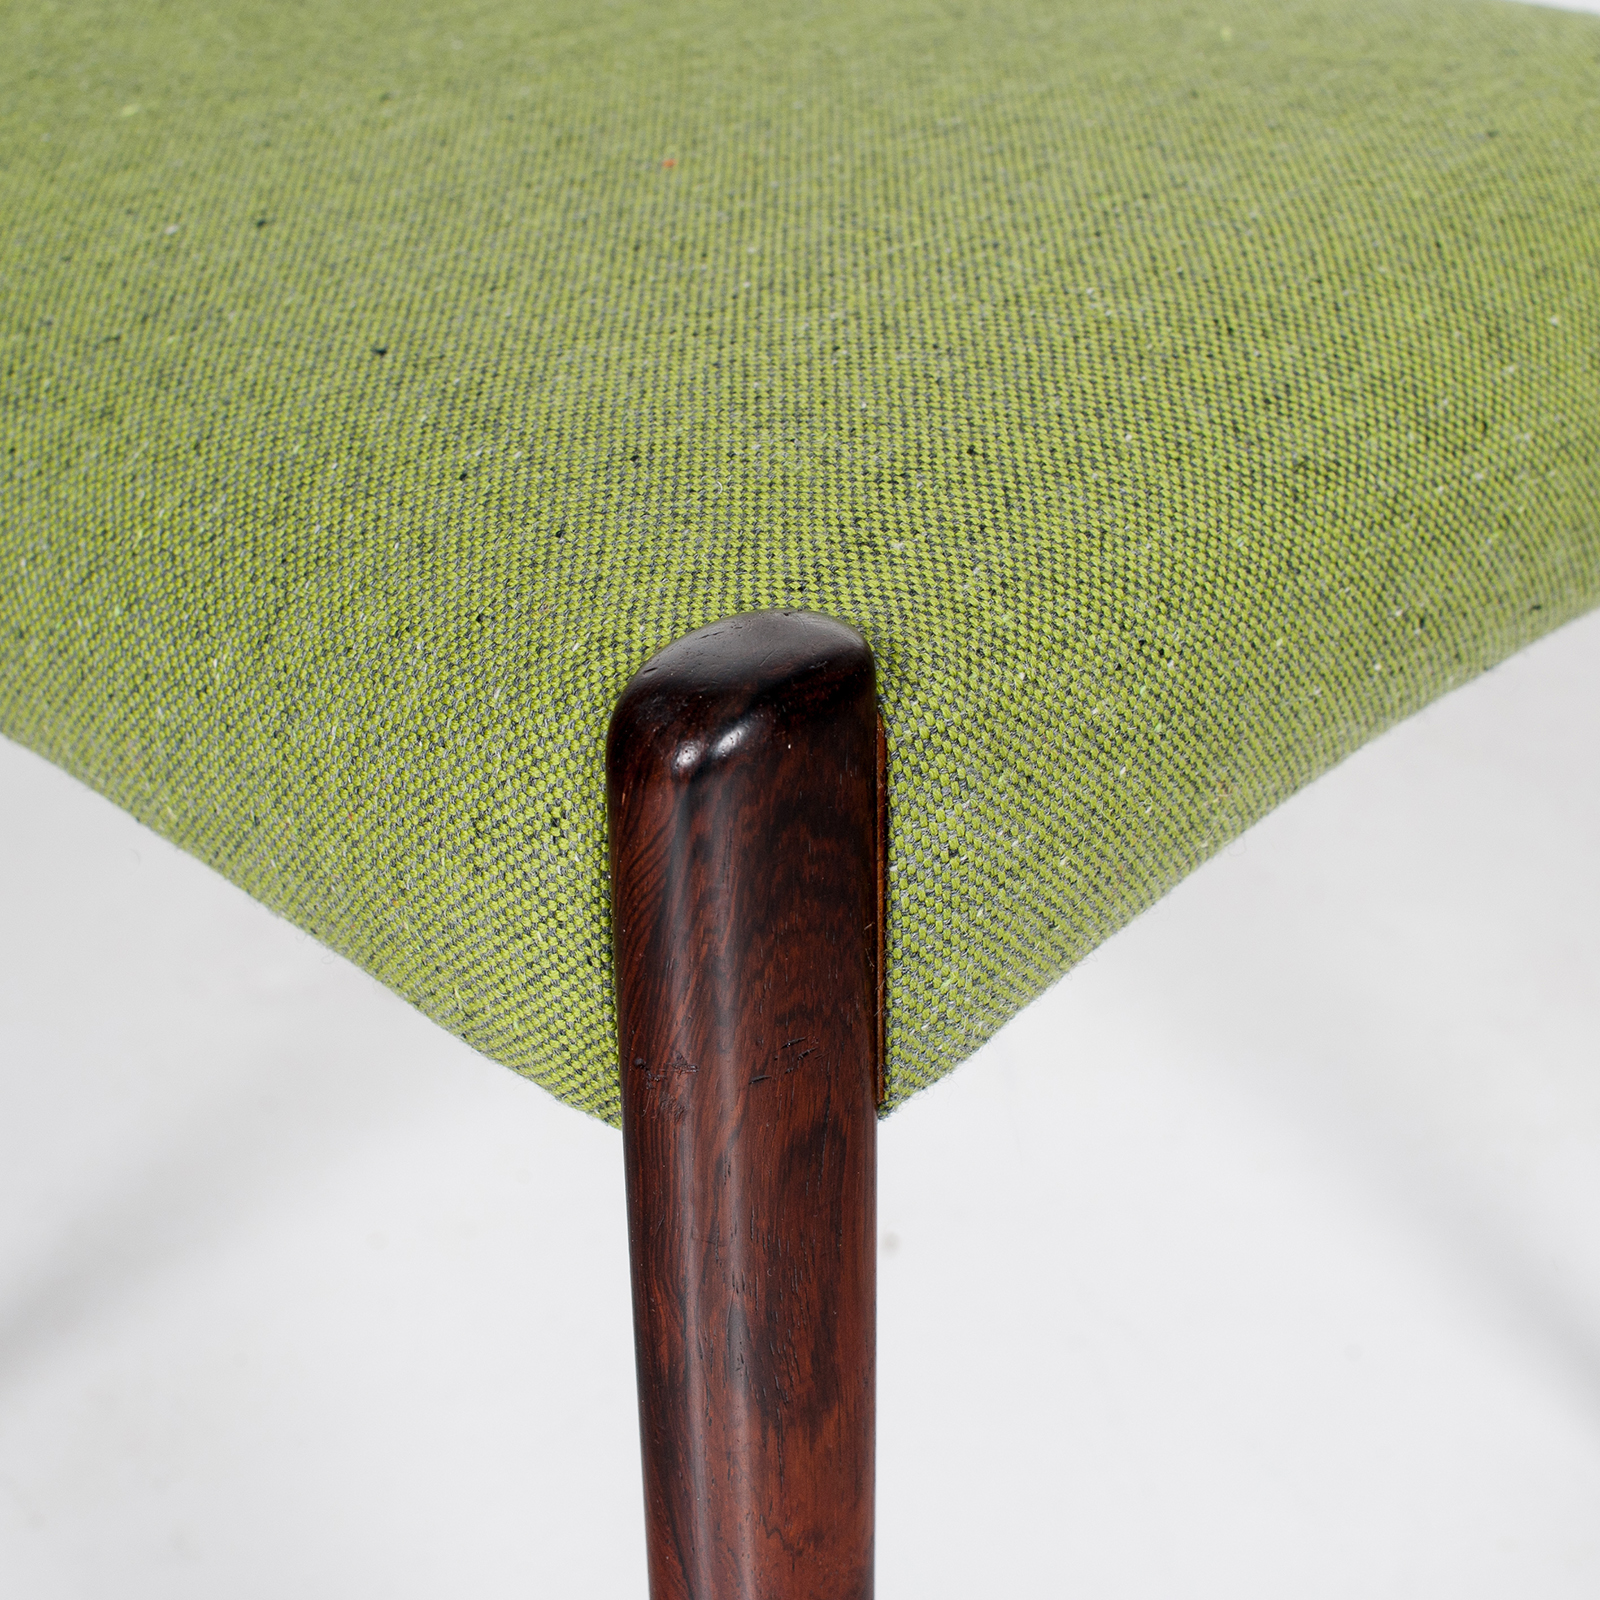 Set Of 4 Ladder Back Dining Chairs By Niels Moller In Rosewood, 1960s, Denmark30